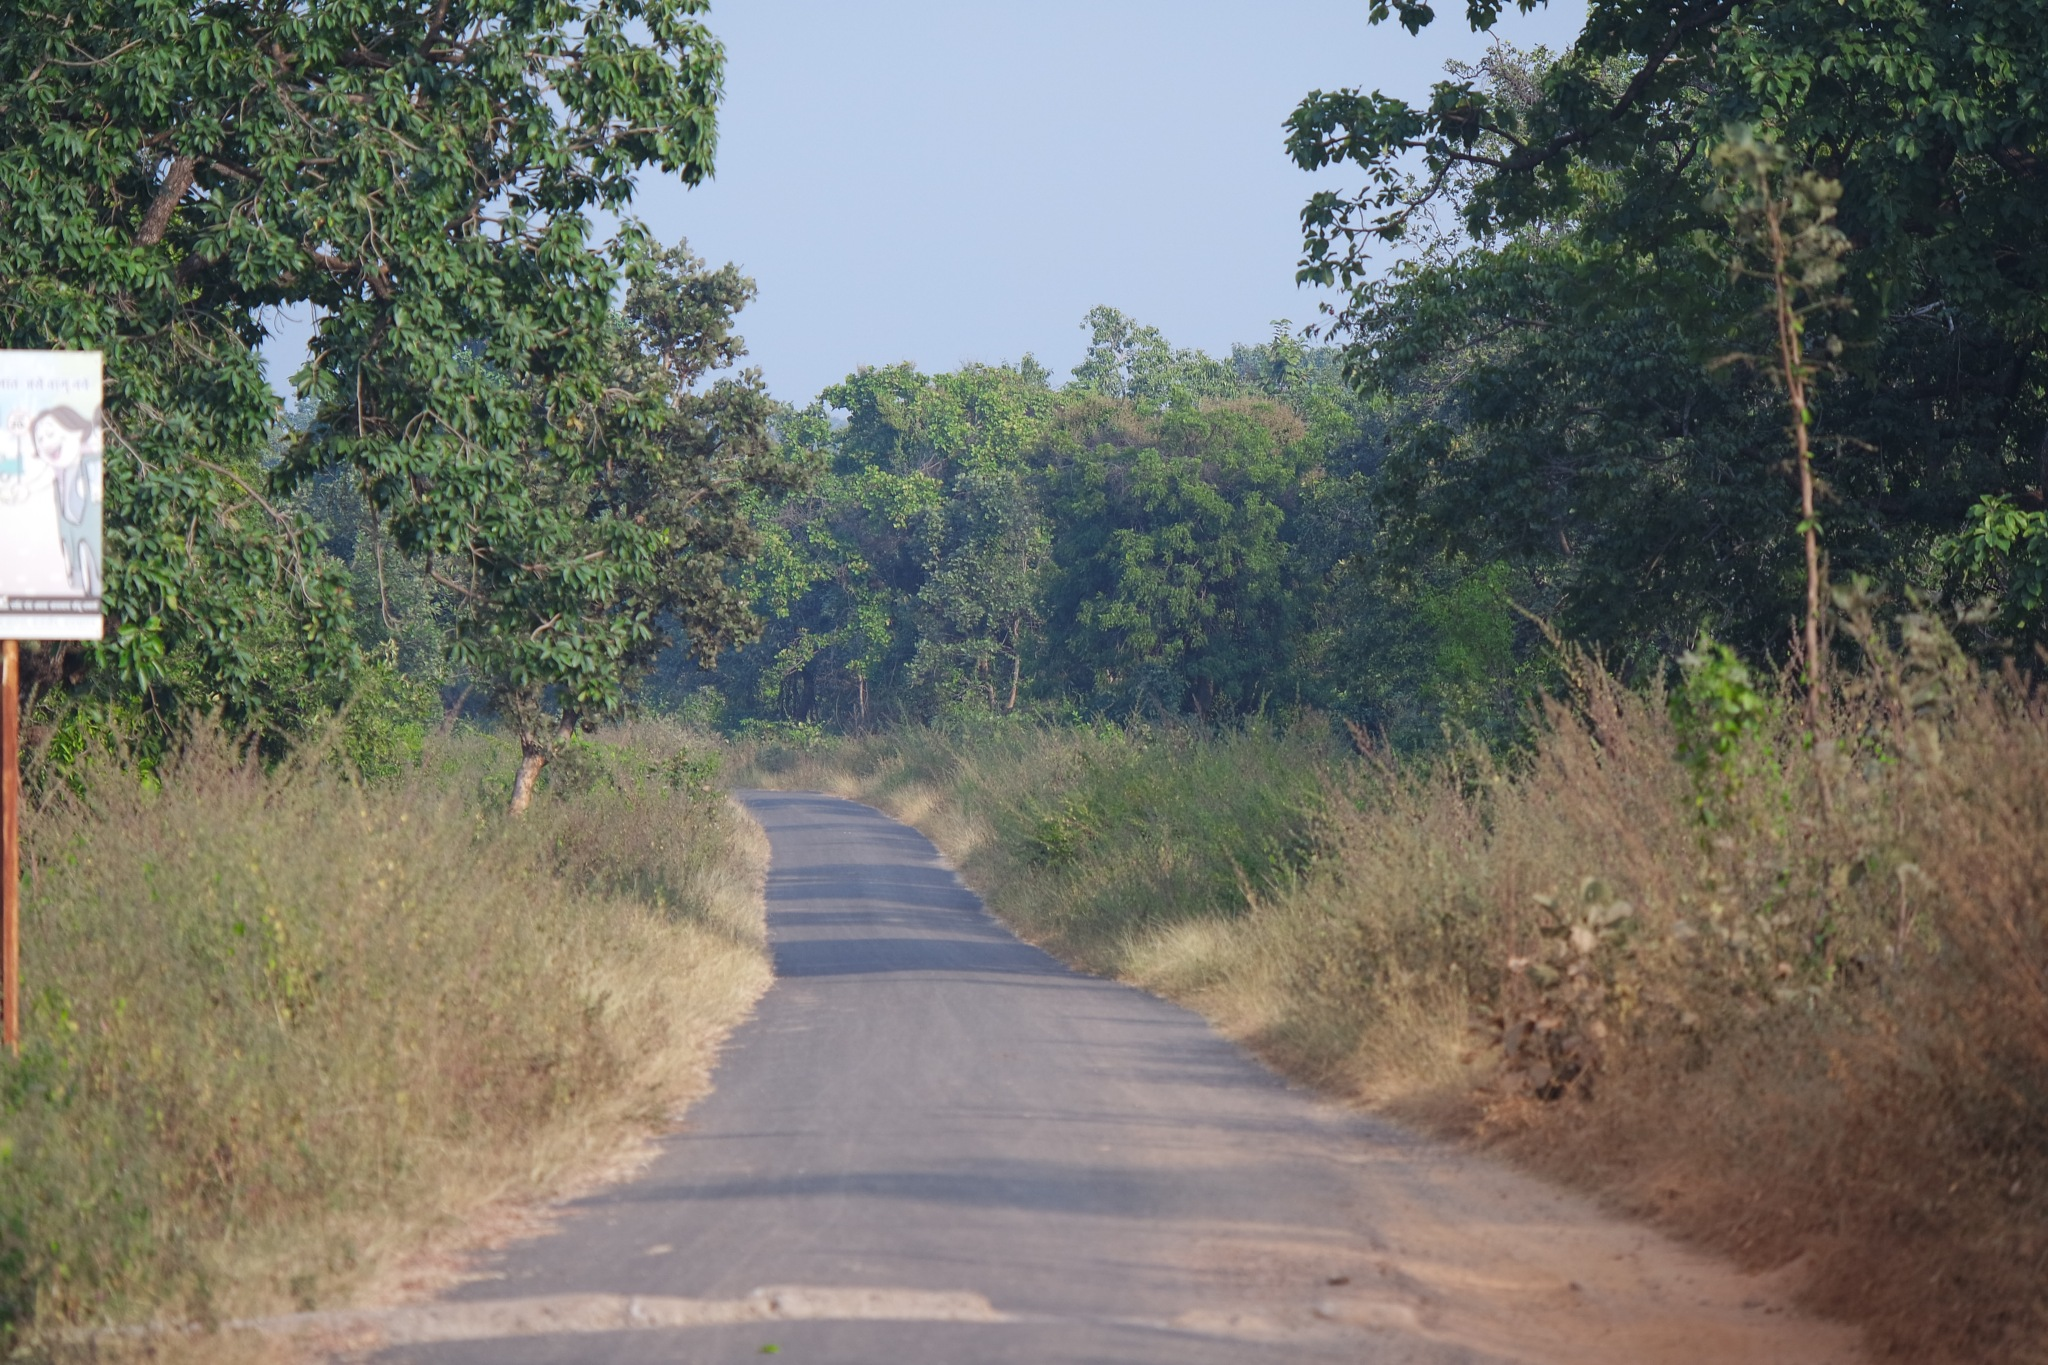 Silent Road  by Rajesh Khurana